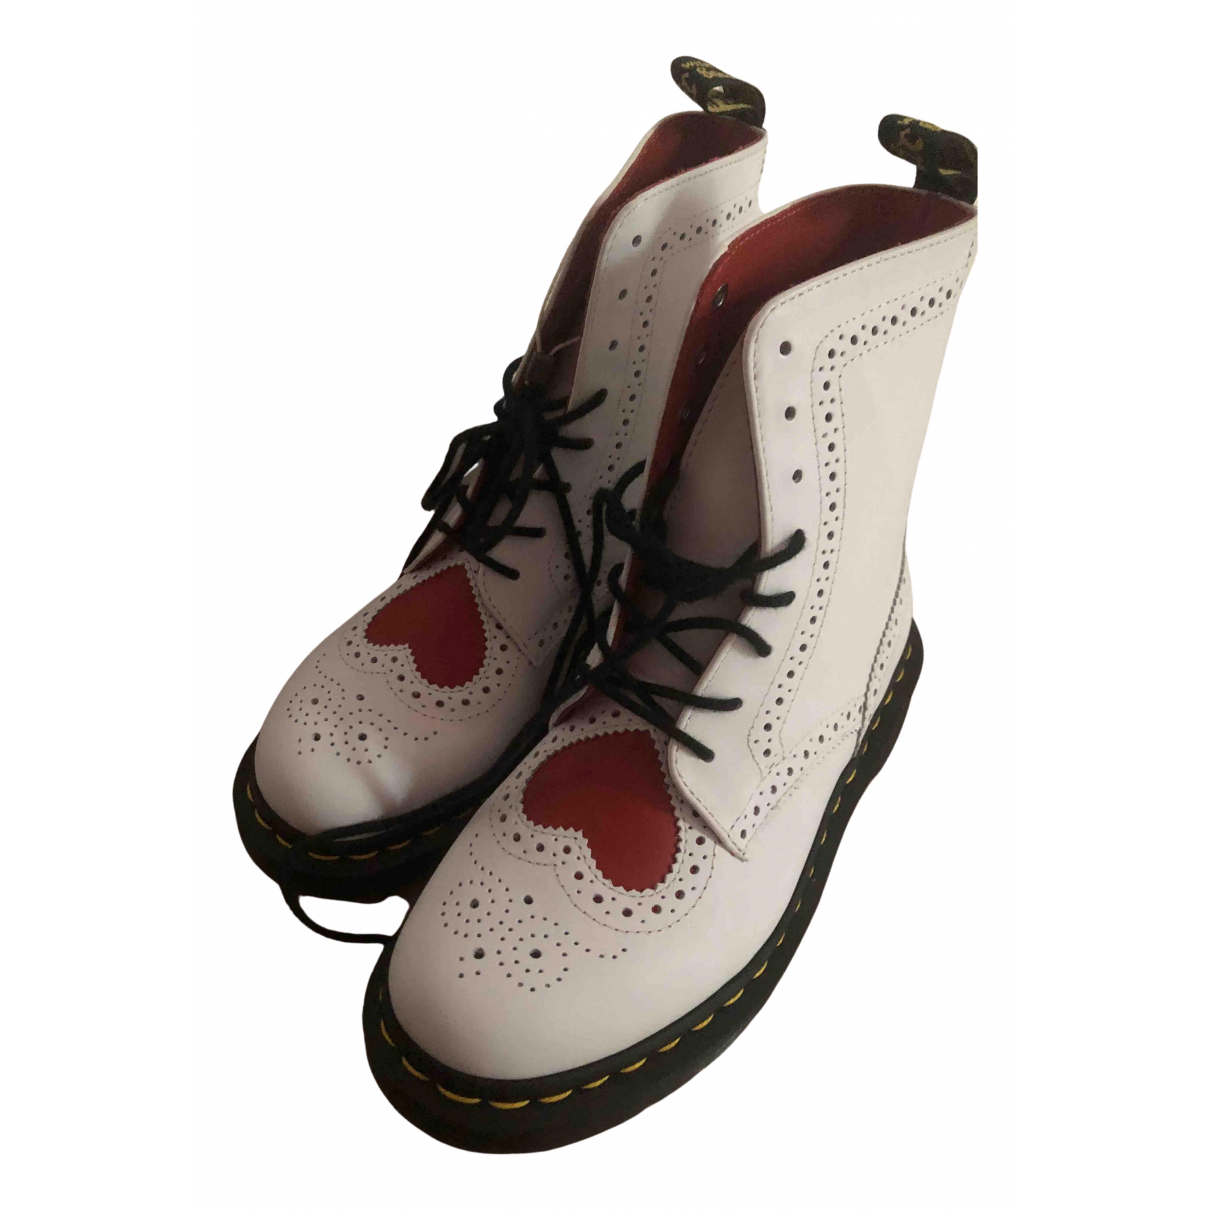 Dr. Martens 1460 Pascal (8 eye) Stiefel in  Weiss Leder